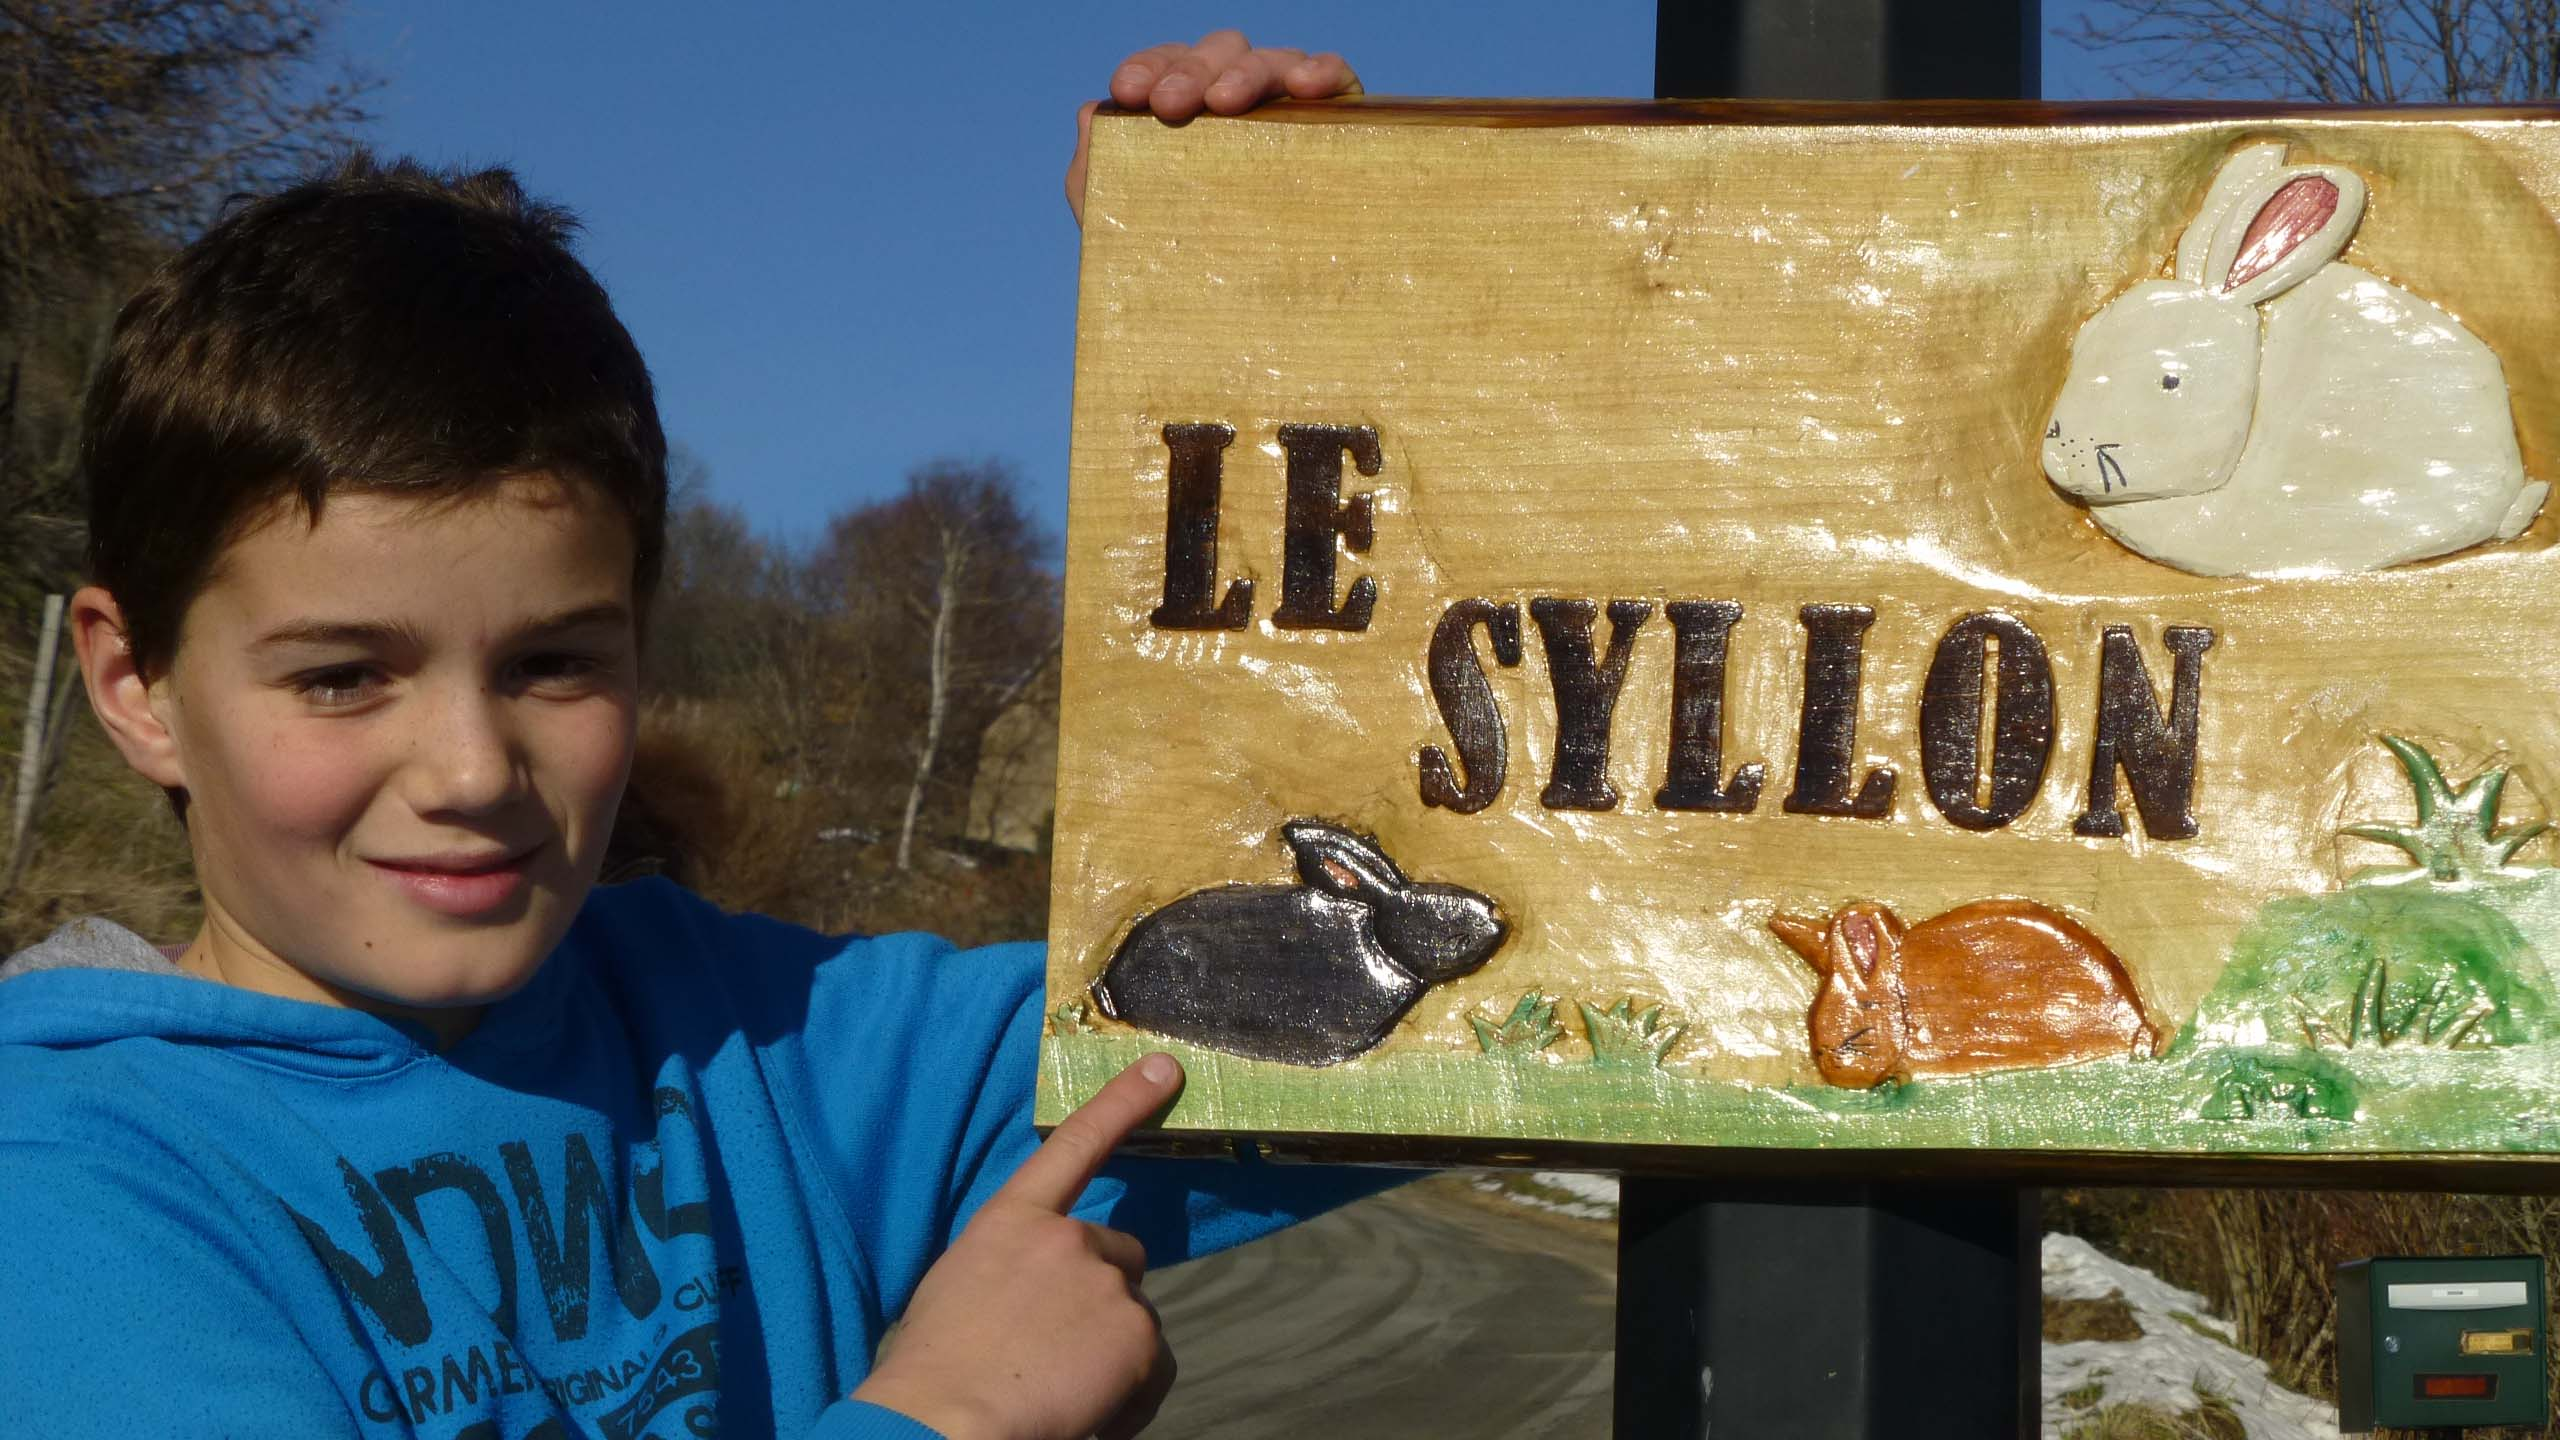 Le Syllon-All1.jpg